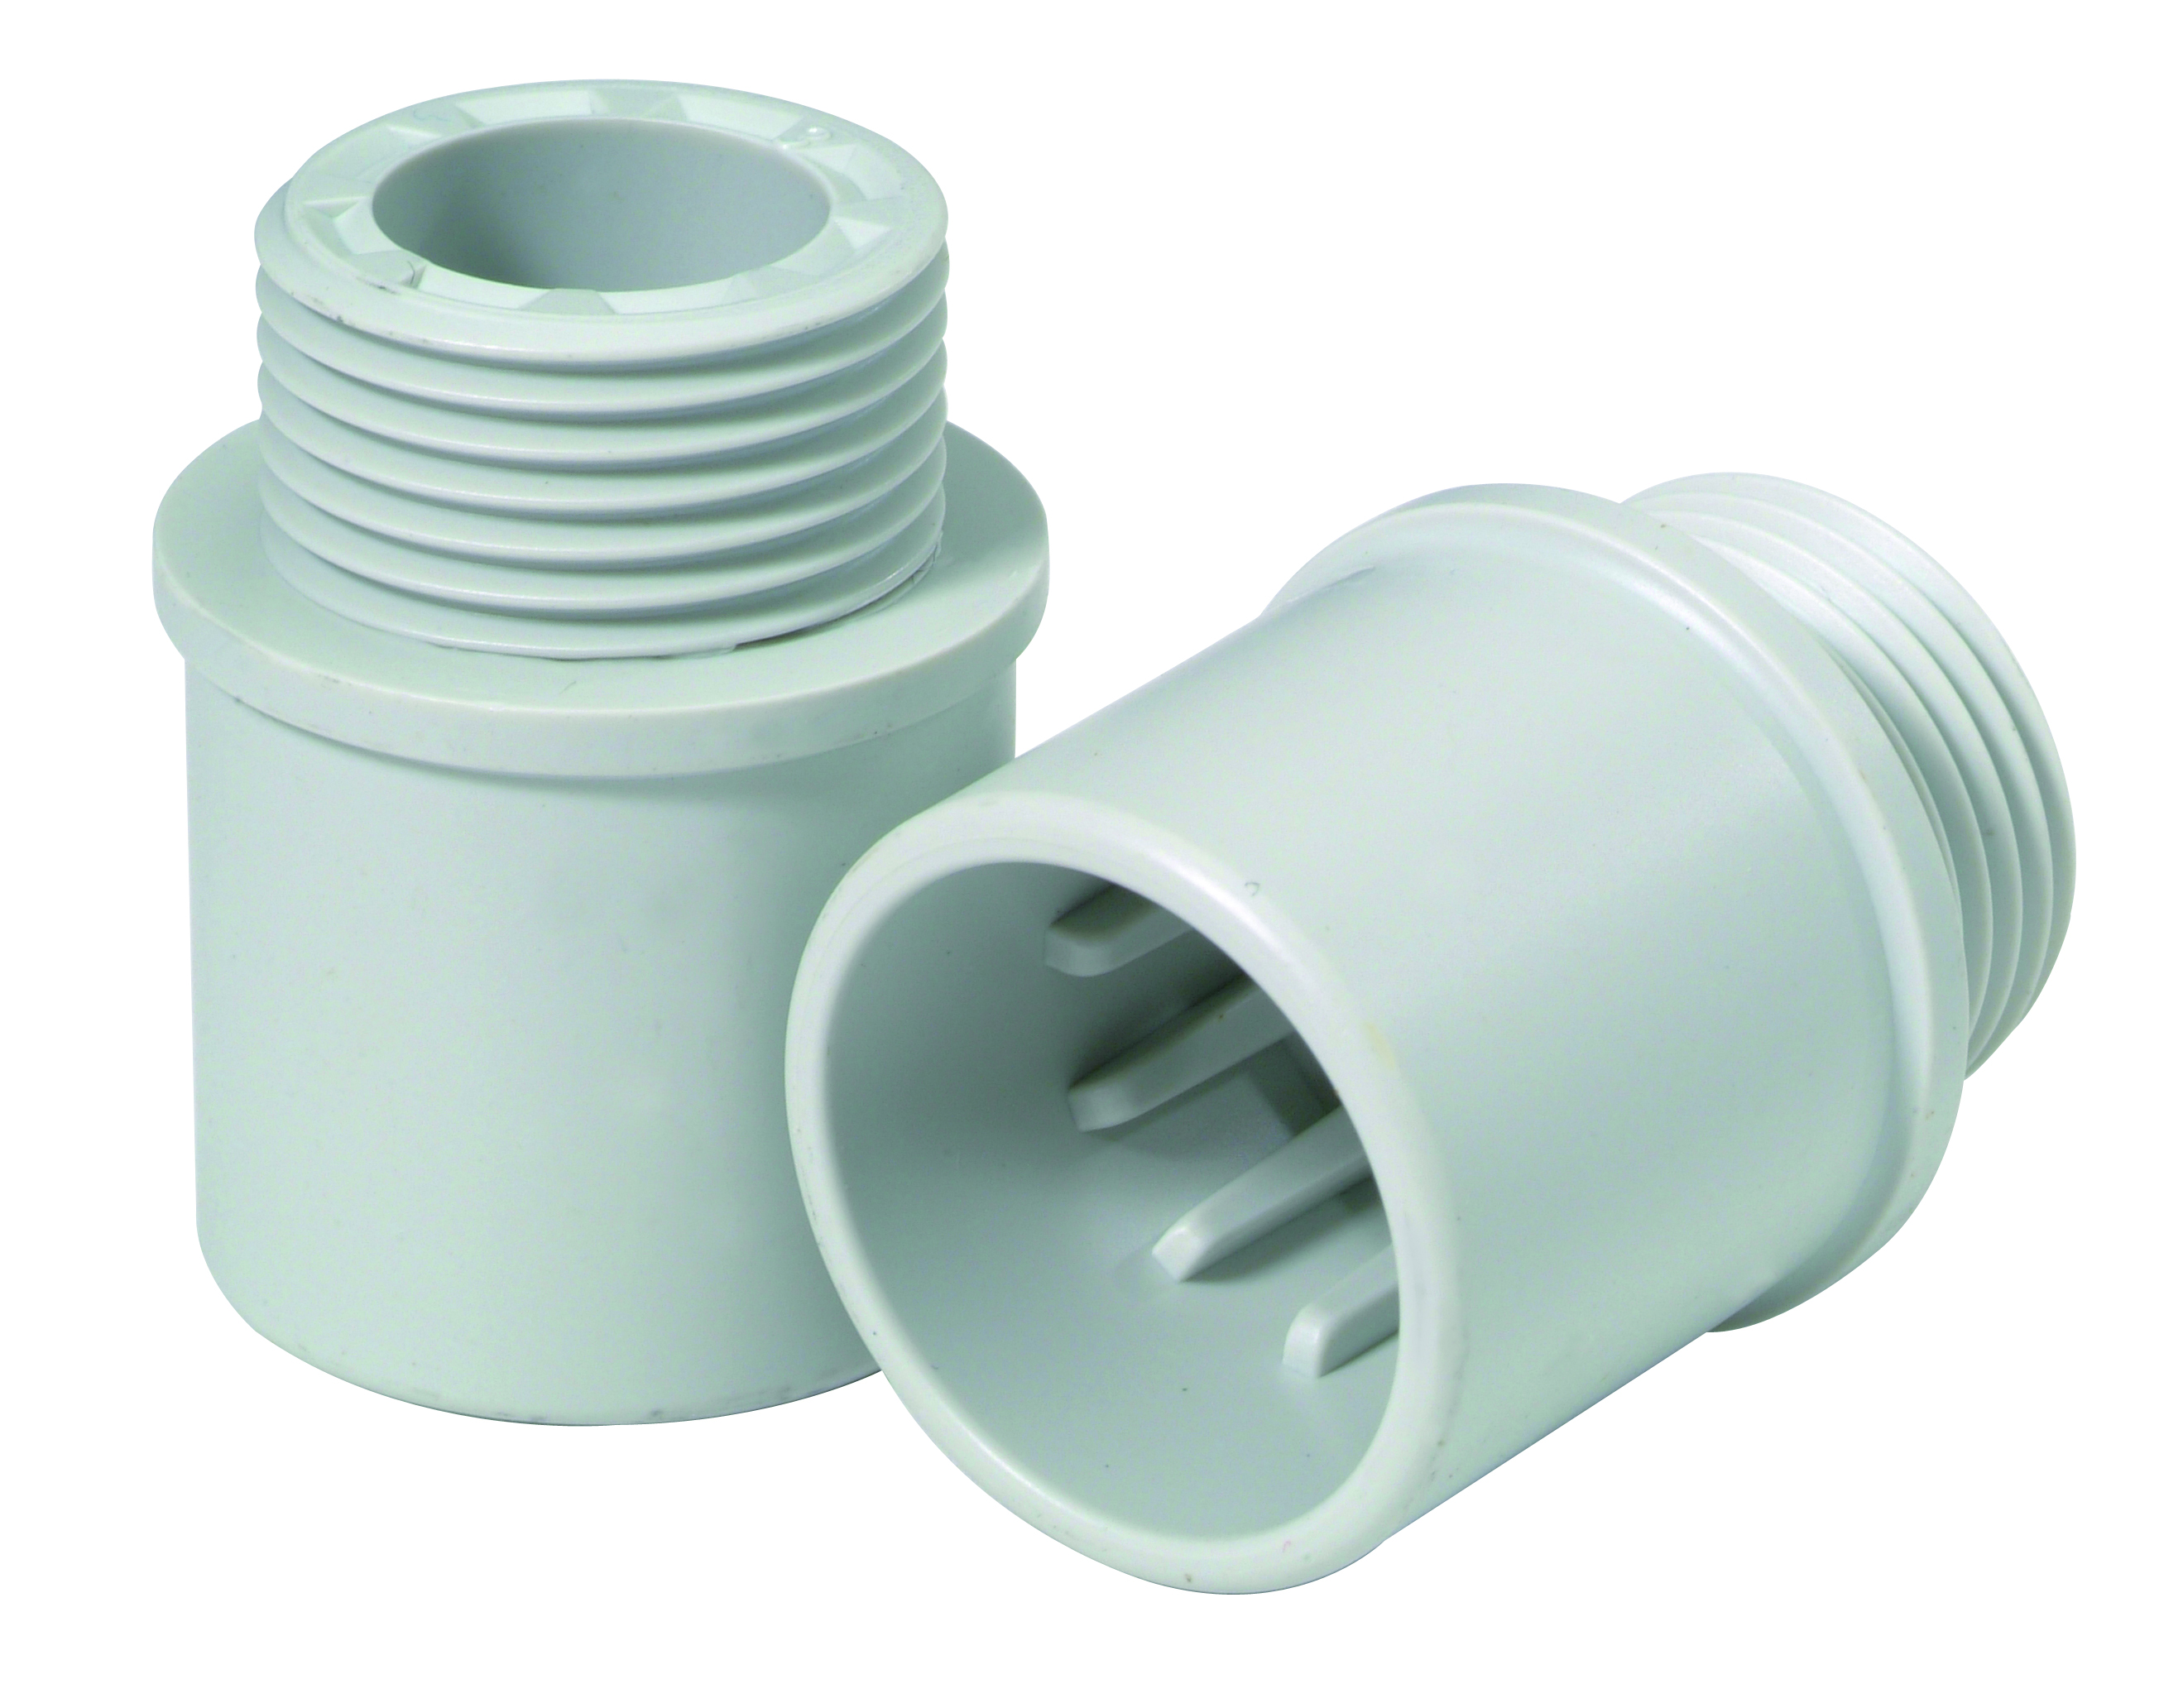 Entrance for PVC pipe 16-20mm 10 pieces